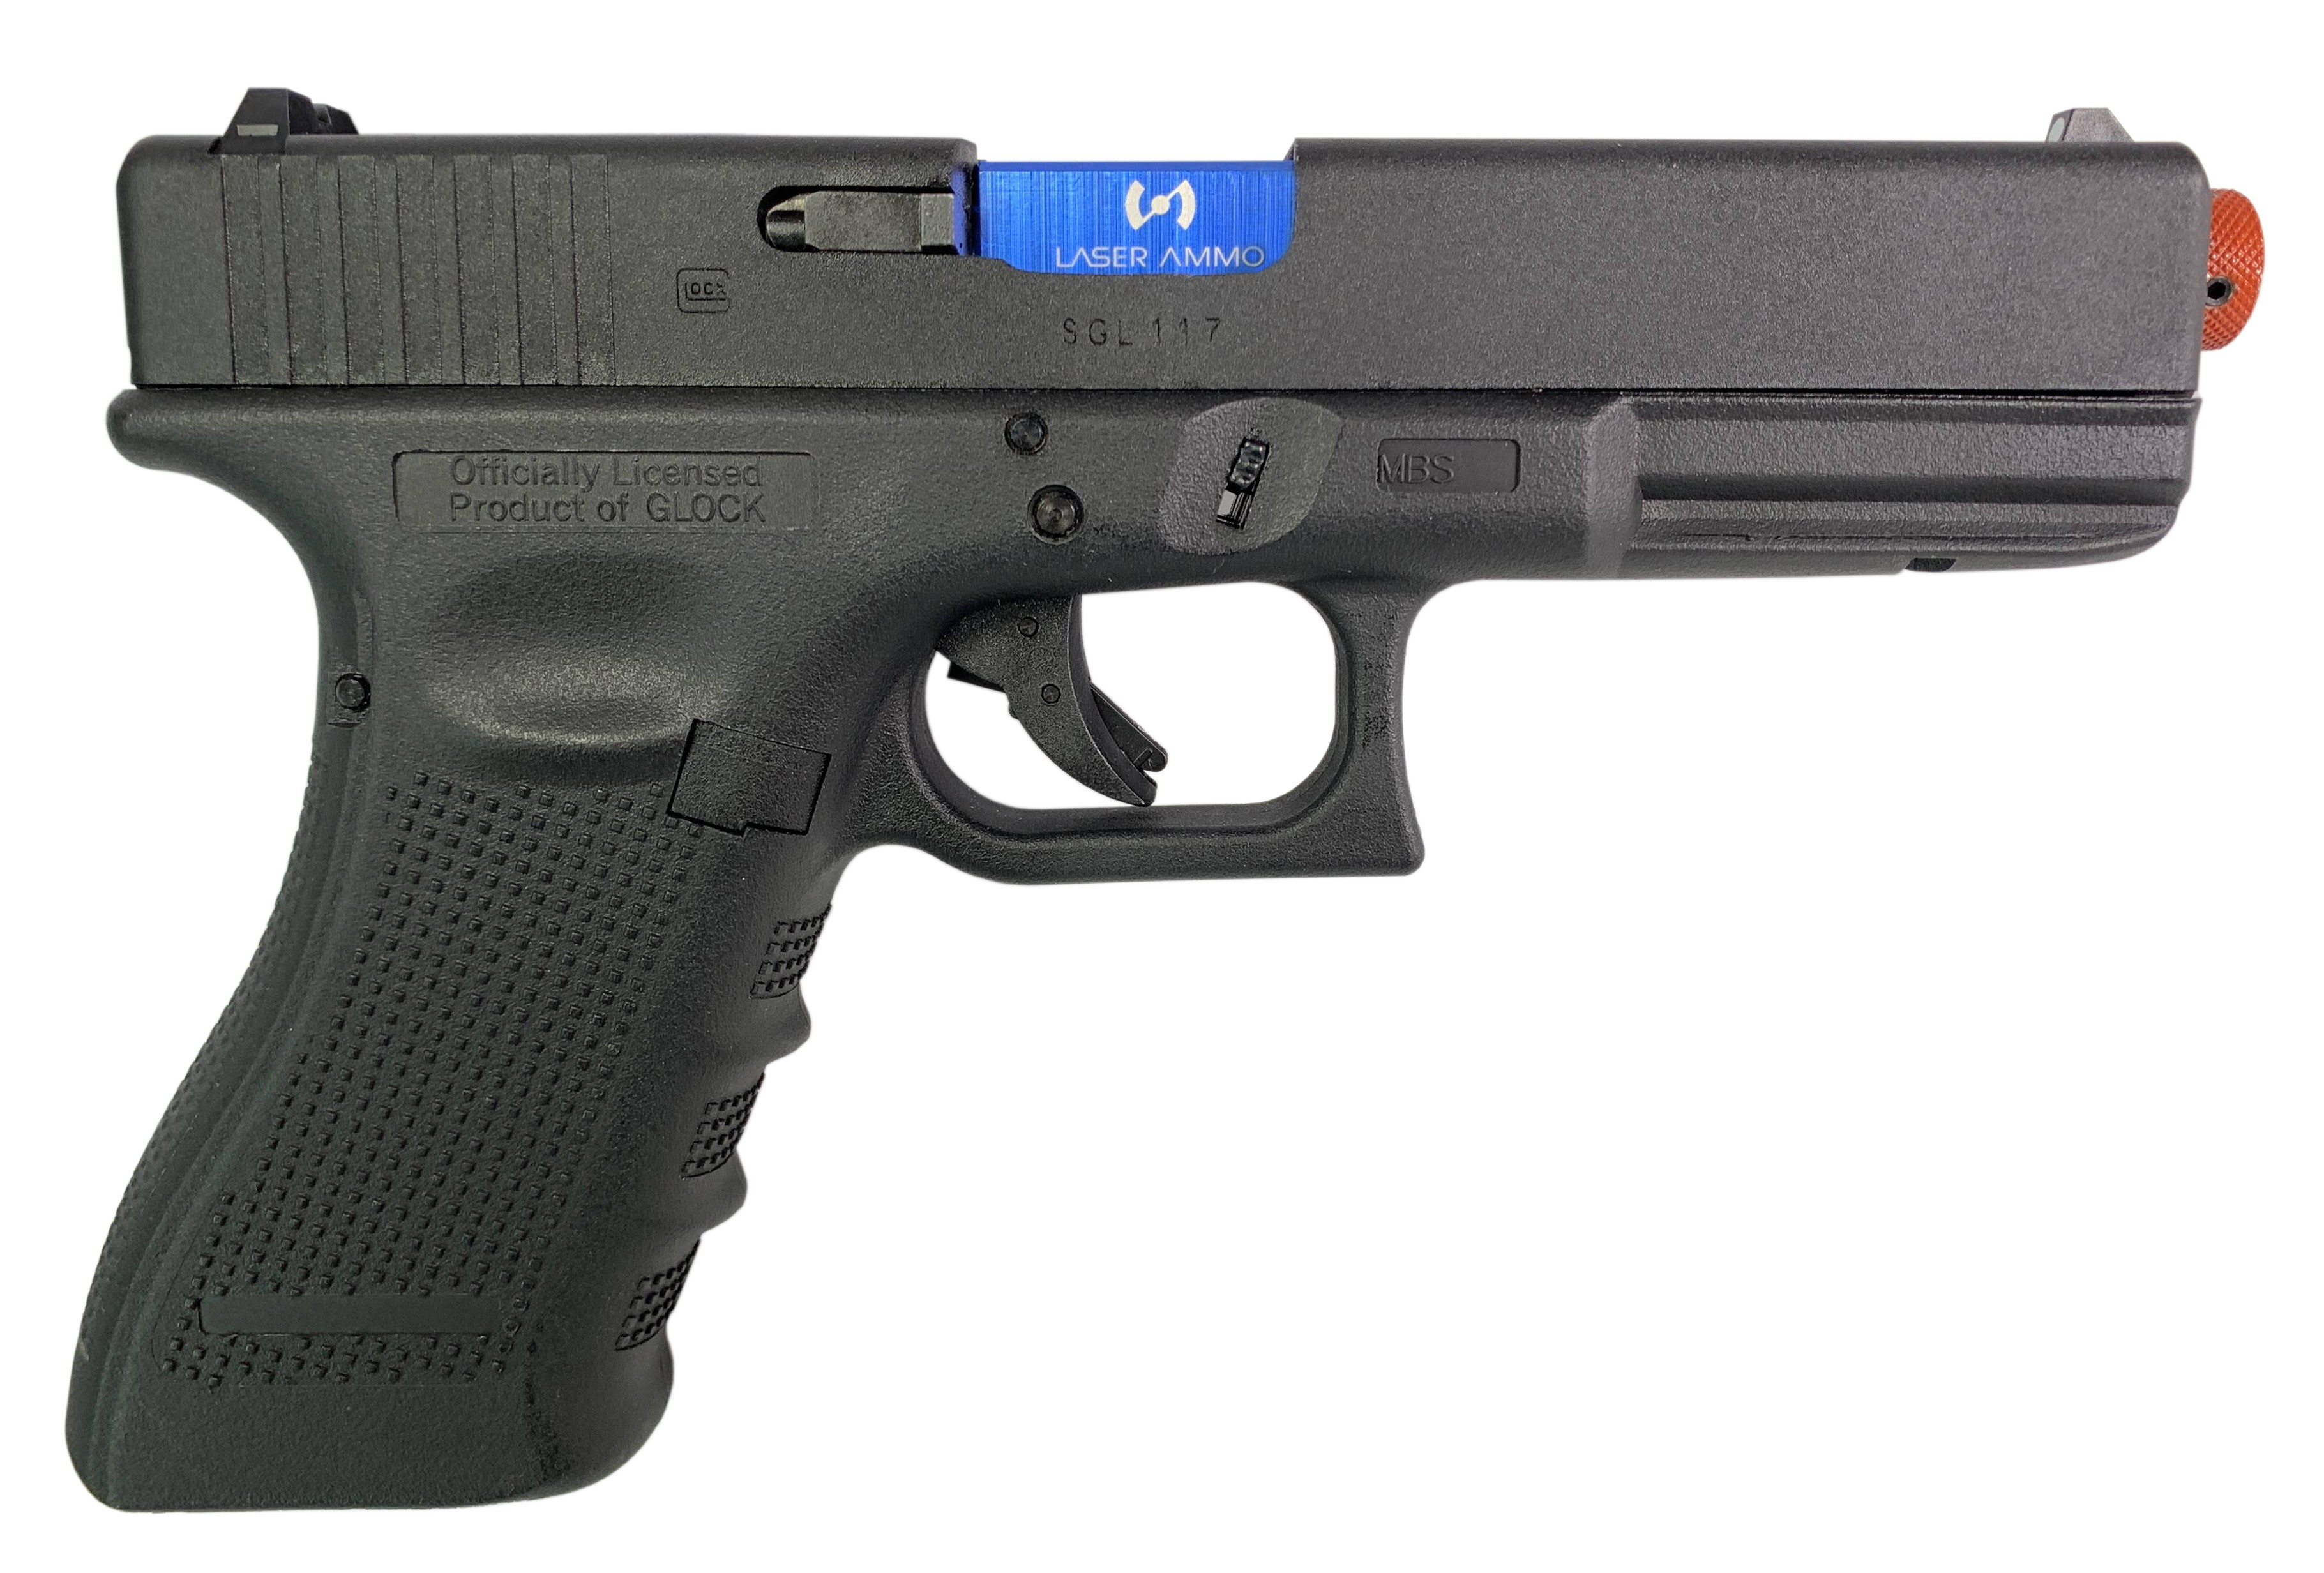 Recoil Enabled Training Pistol Umarex G17 Co2 Recoil Enabled Firearms Training Guns Recoil Enabled Firearms Laser Ammo